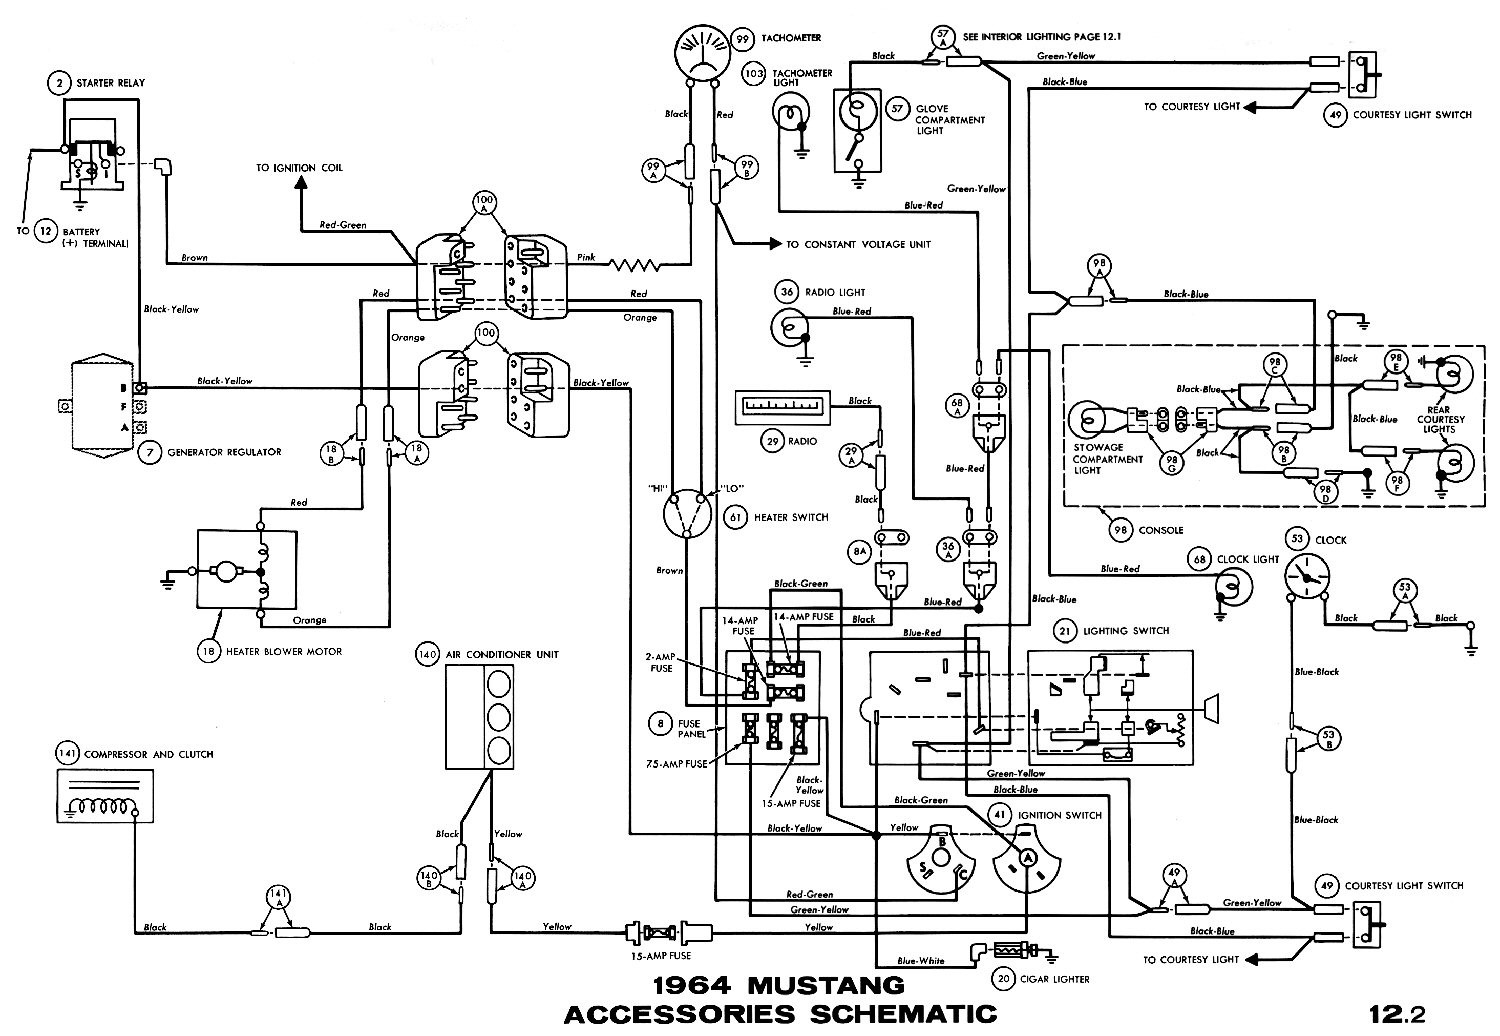 1970 Mustang Coupe Wiring Diagram - Wiring Diagrams Hubs - 65 Mustang Wiring Diagram